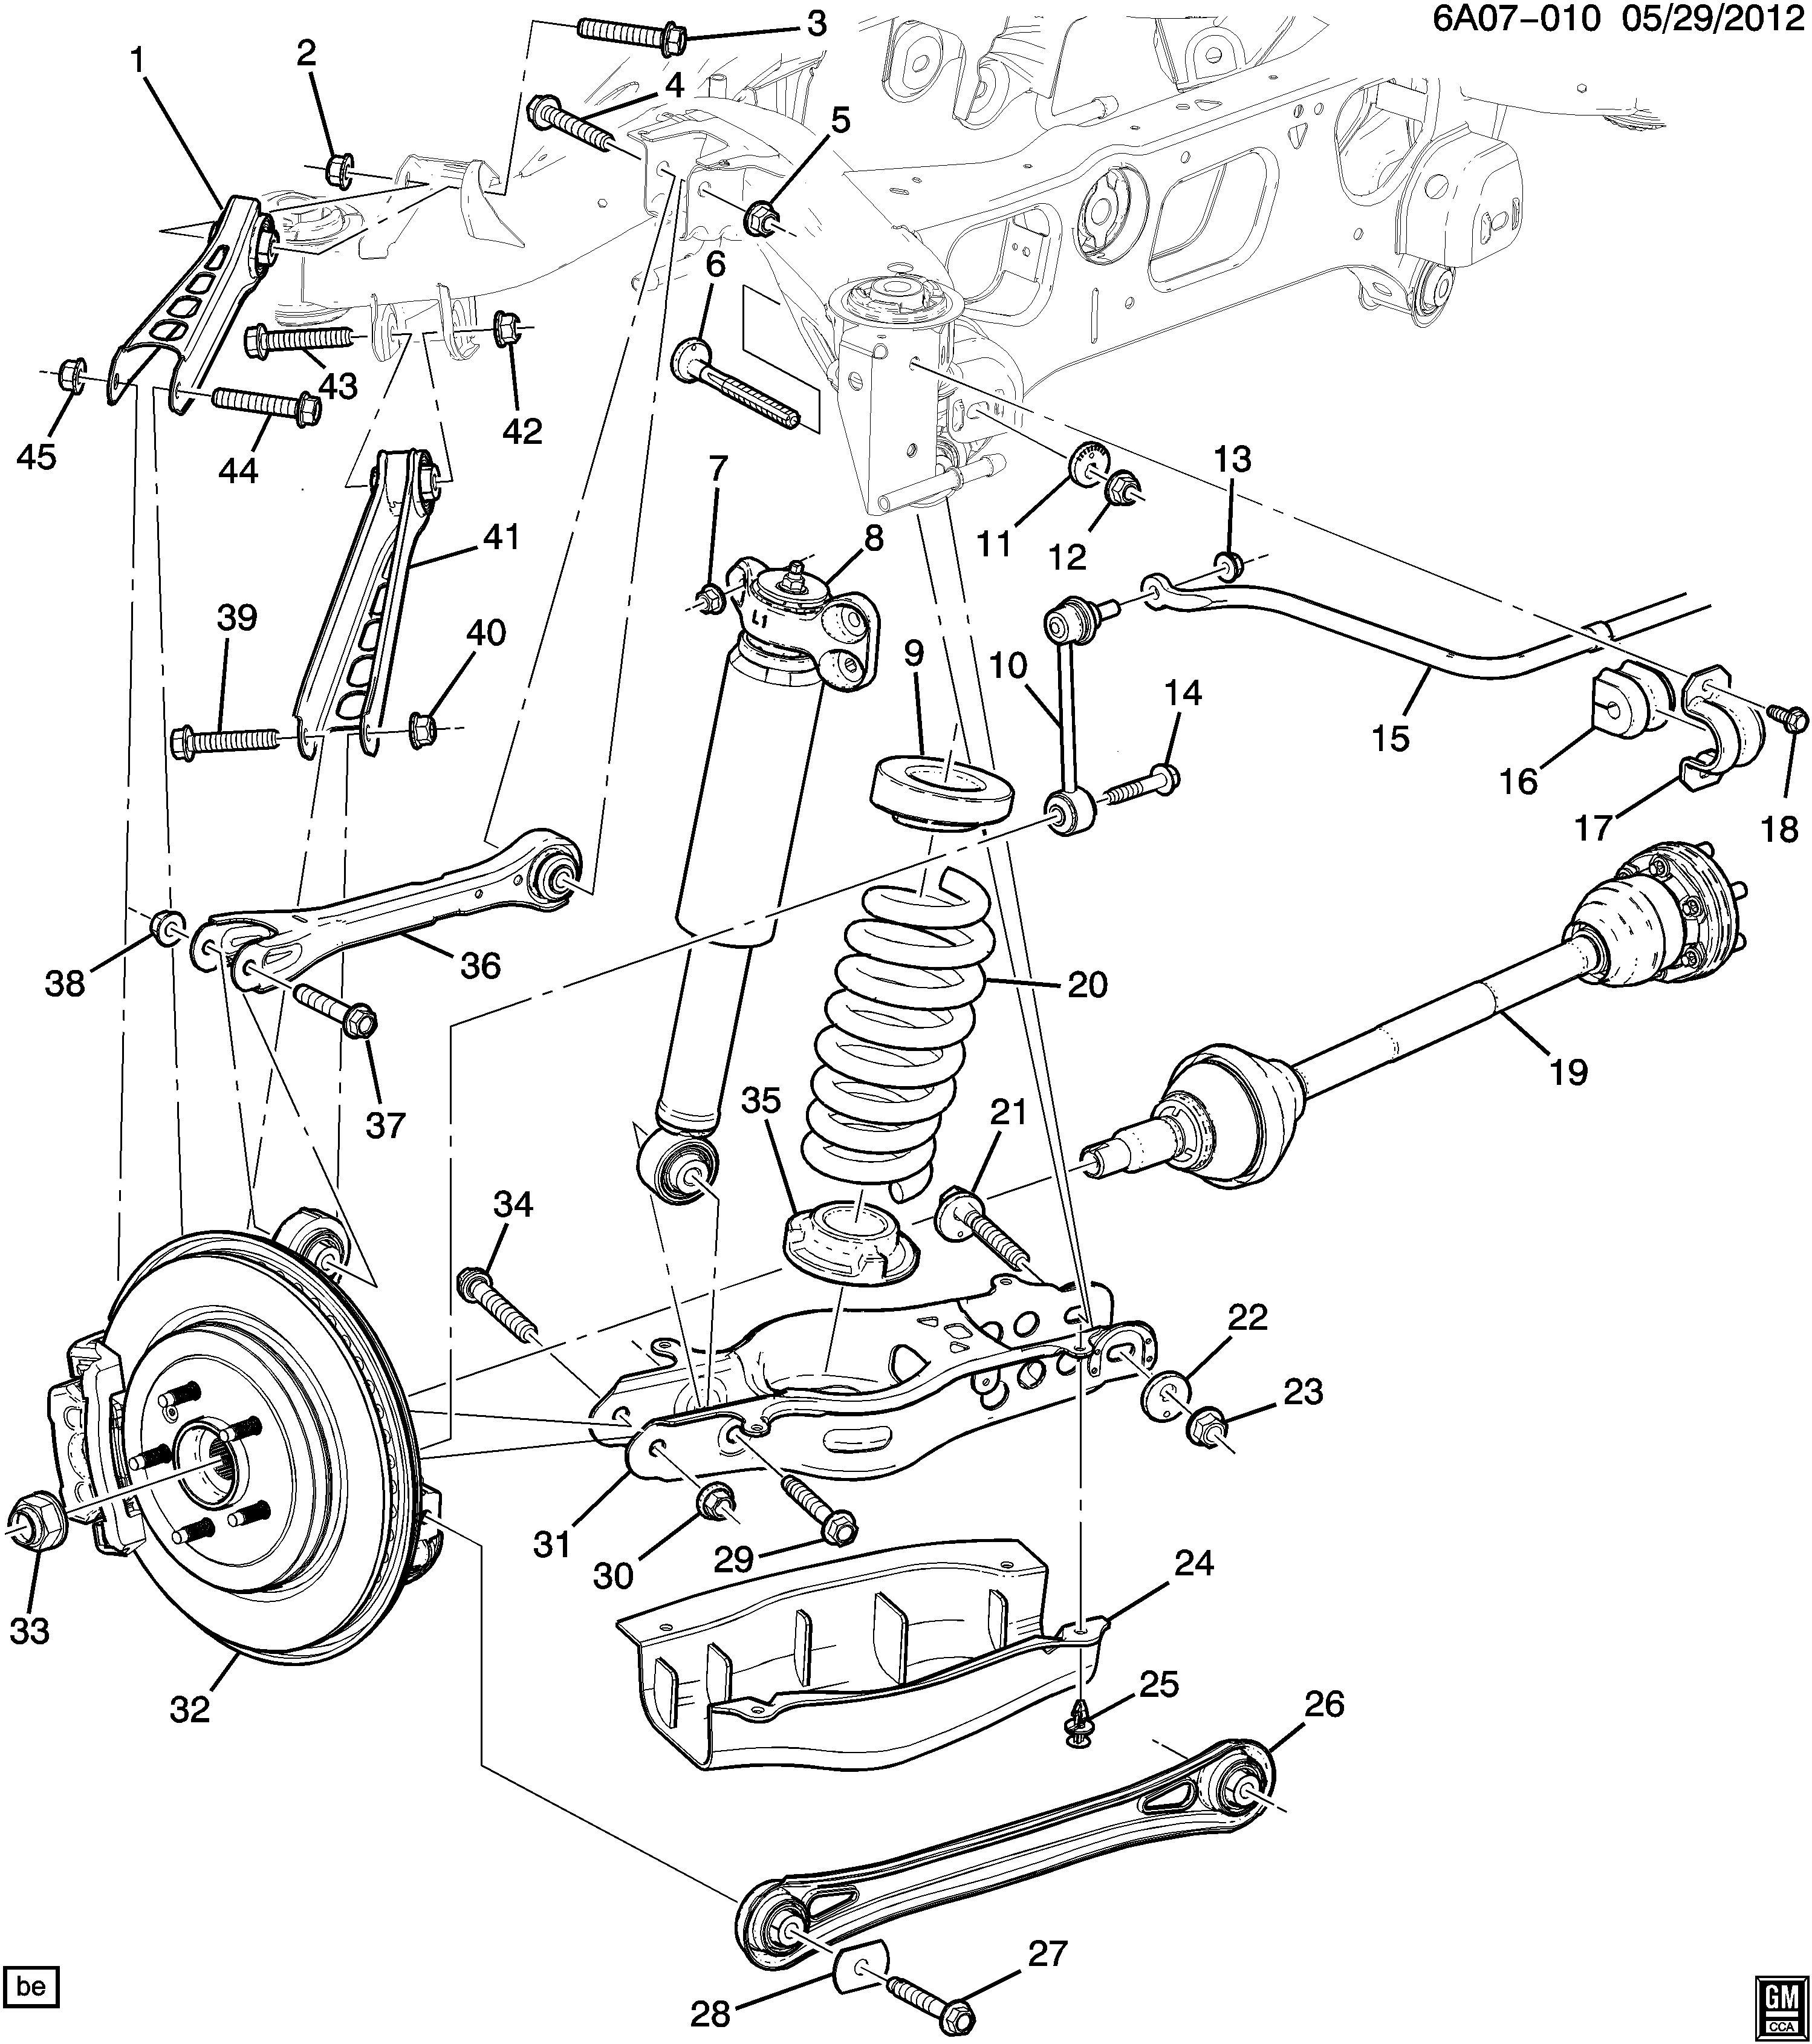 Cadillac Ats Absorber Front And Rear Suspension